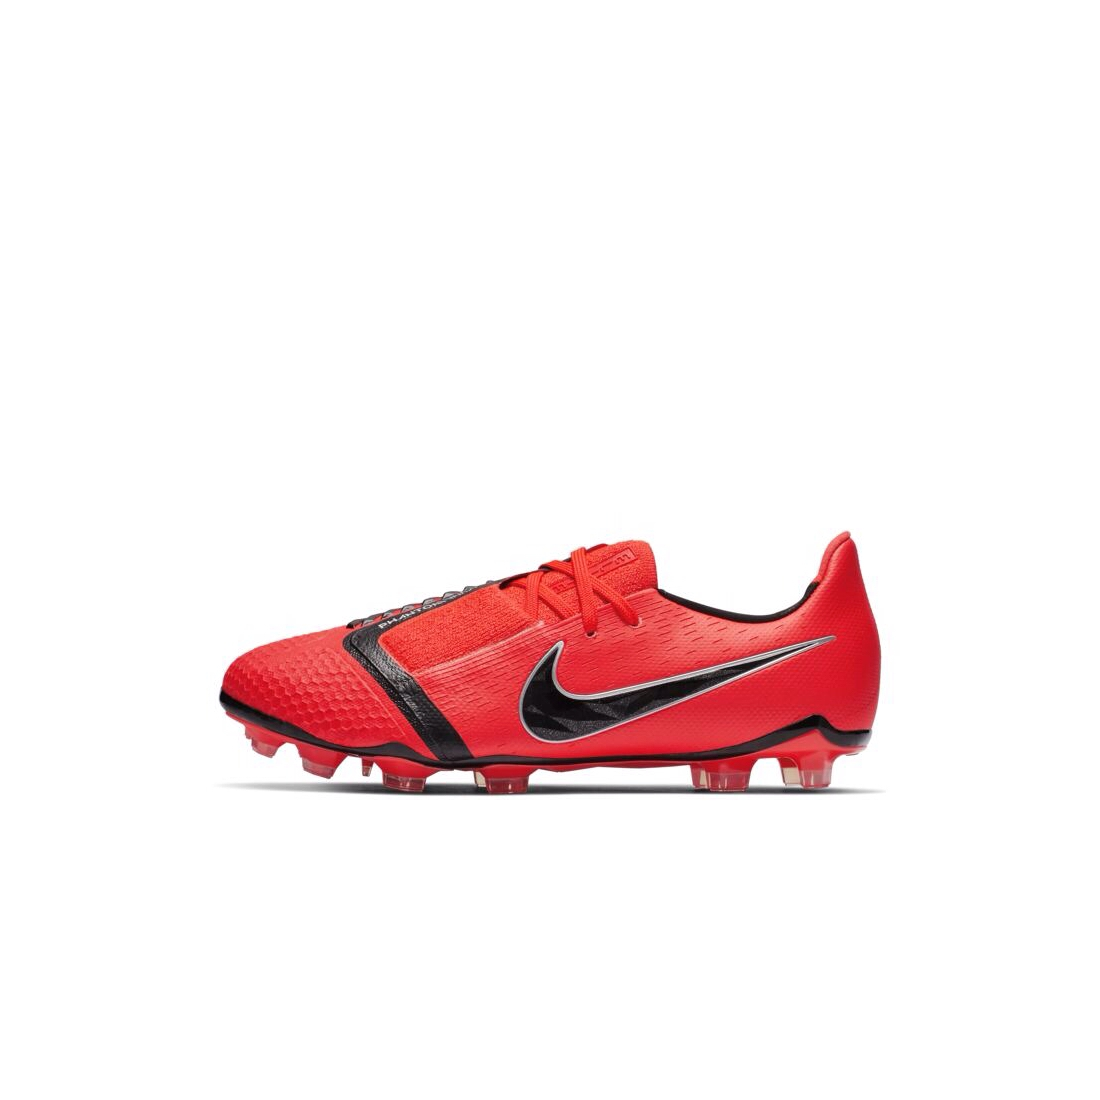 7d3a5d20 БУТСЫ NIKE PHANTOM VENOM ELITE FG JR (SP19) AO0401-600 - Футбольный ...